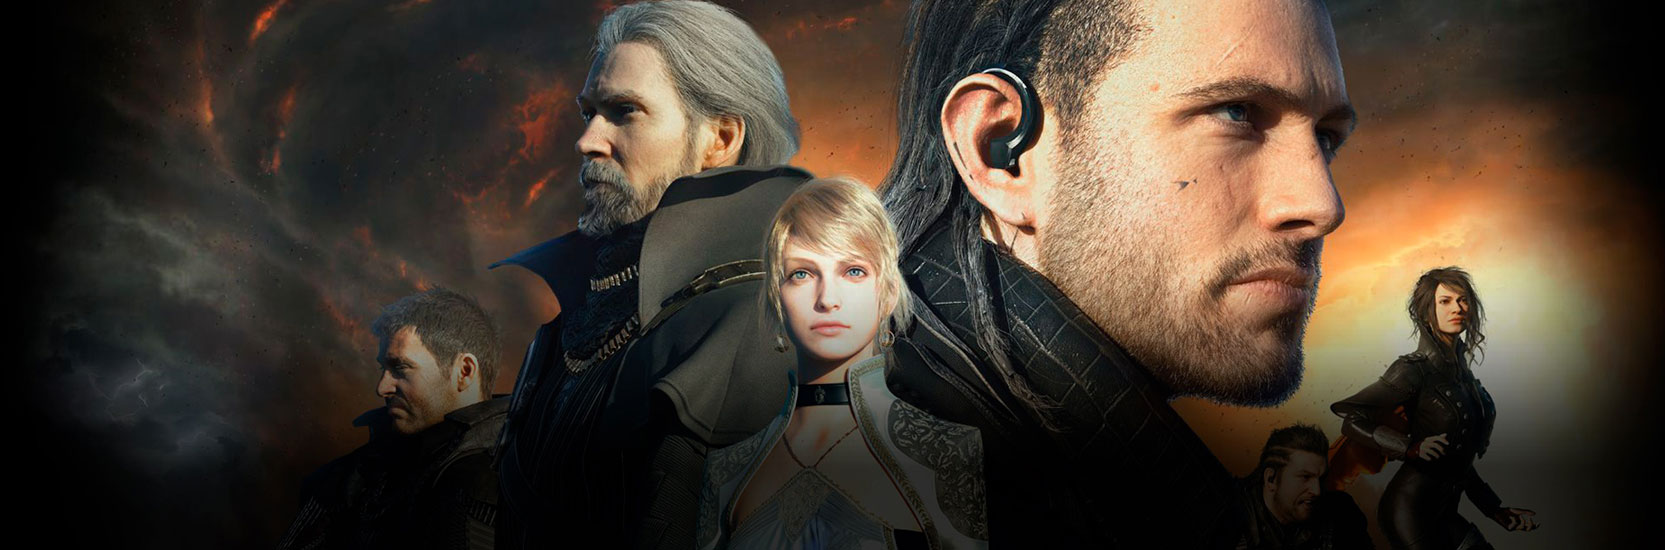 Critique – Kingsglaive : Final Fantasy XV